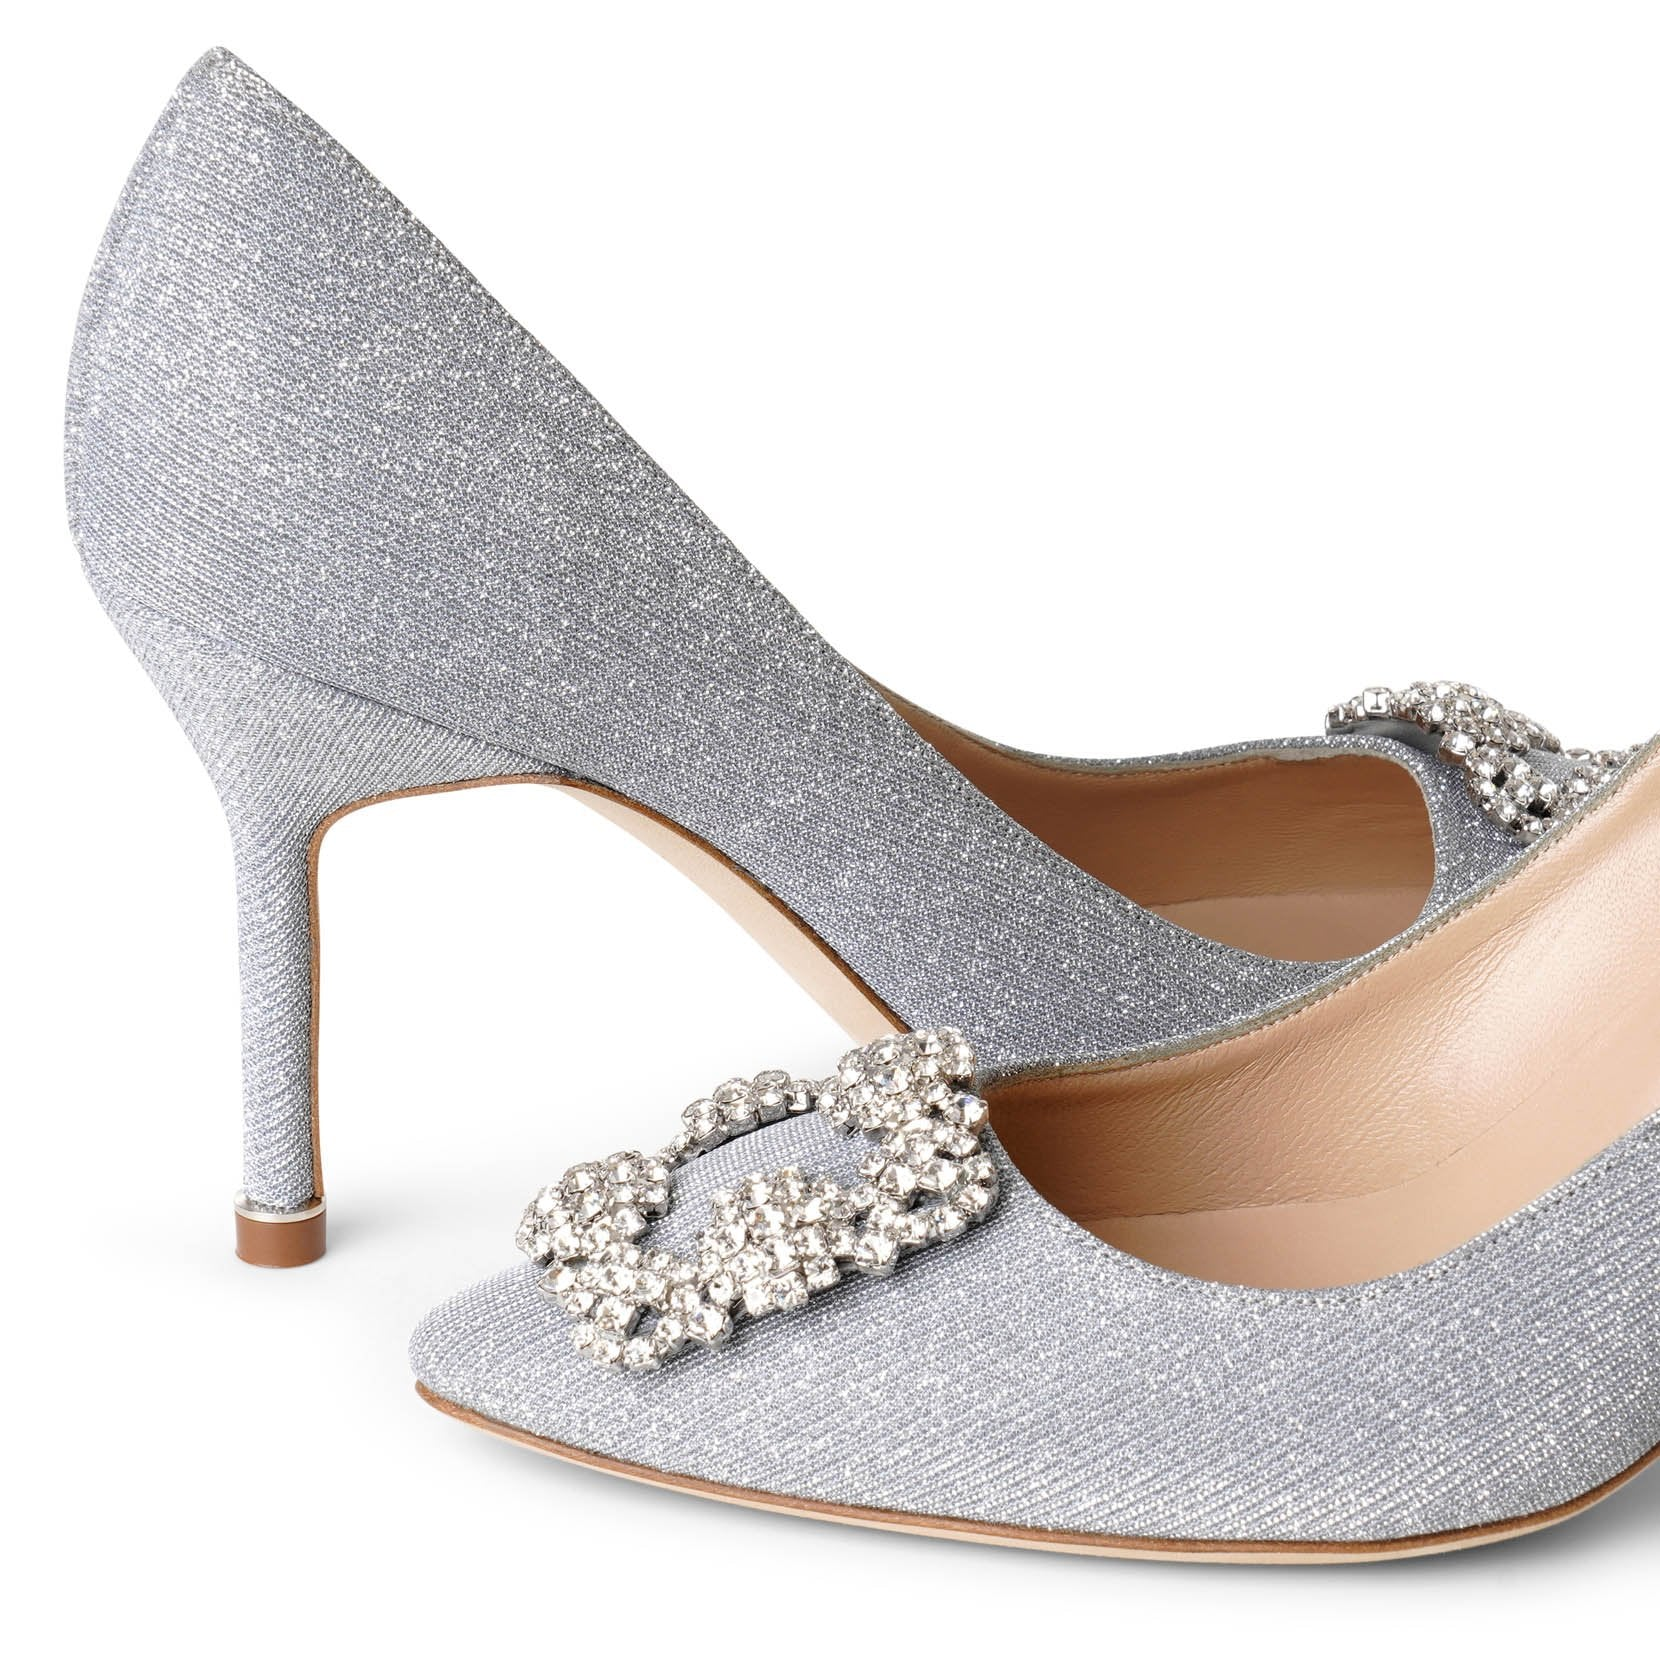 Hangisi 90 silver glitter pumps